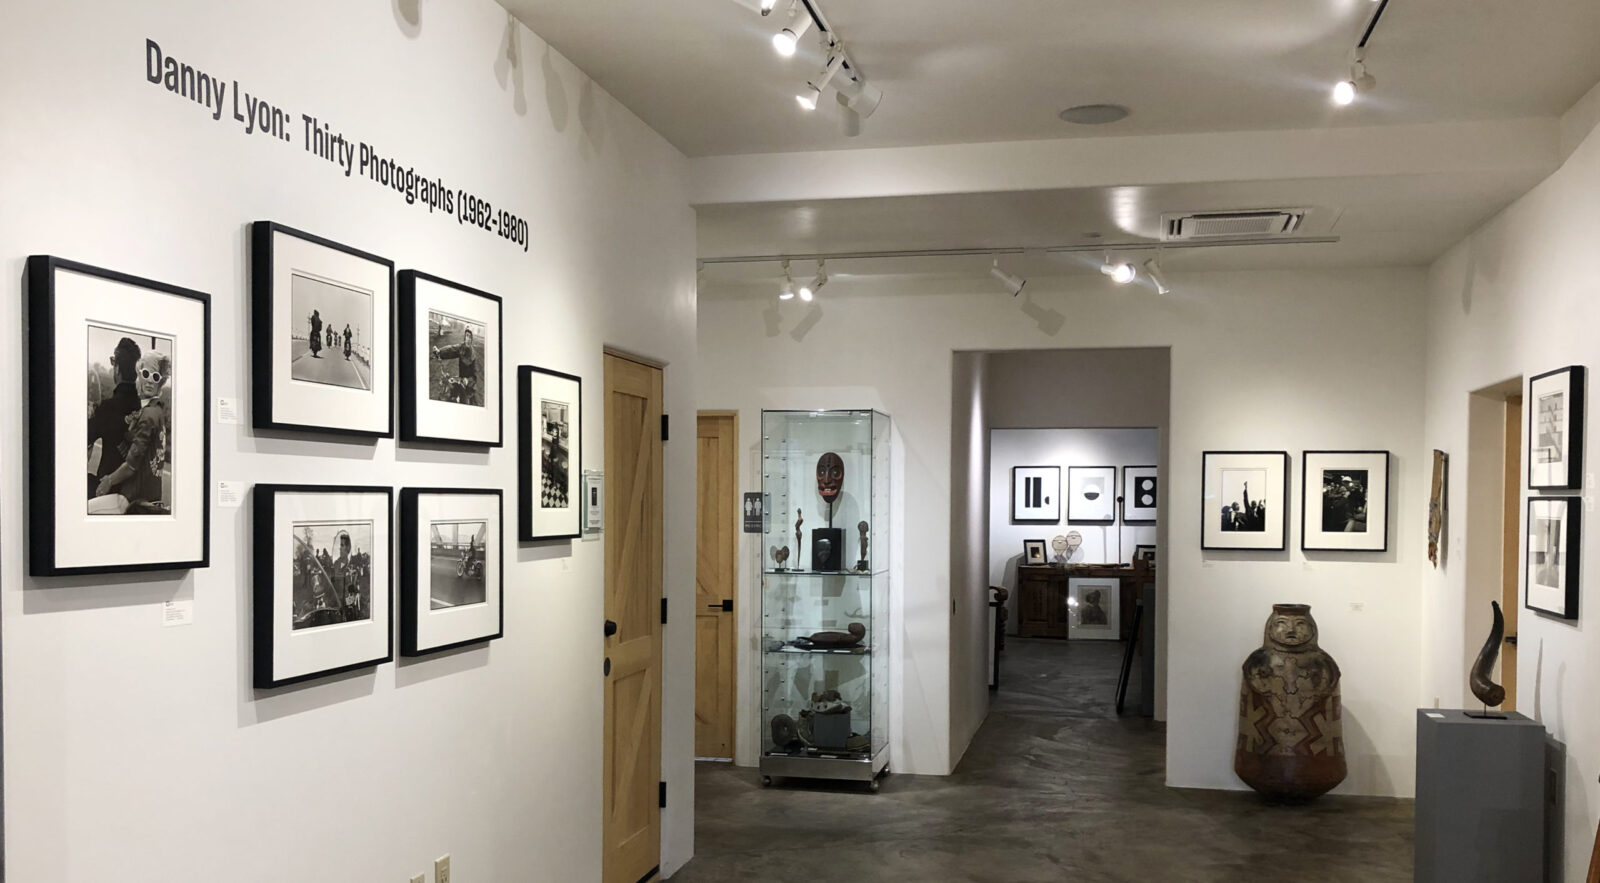 installation image of danny lyon's exhibition at Obscura